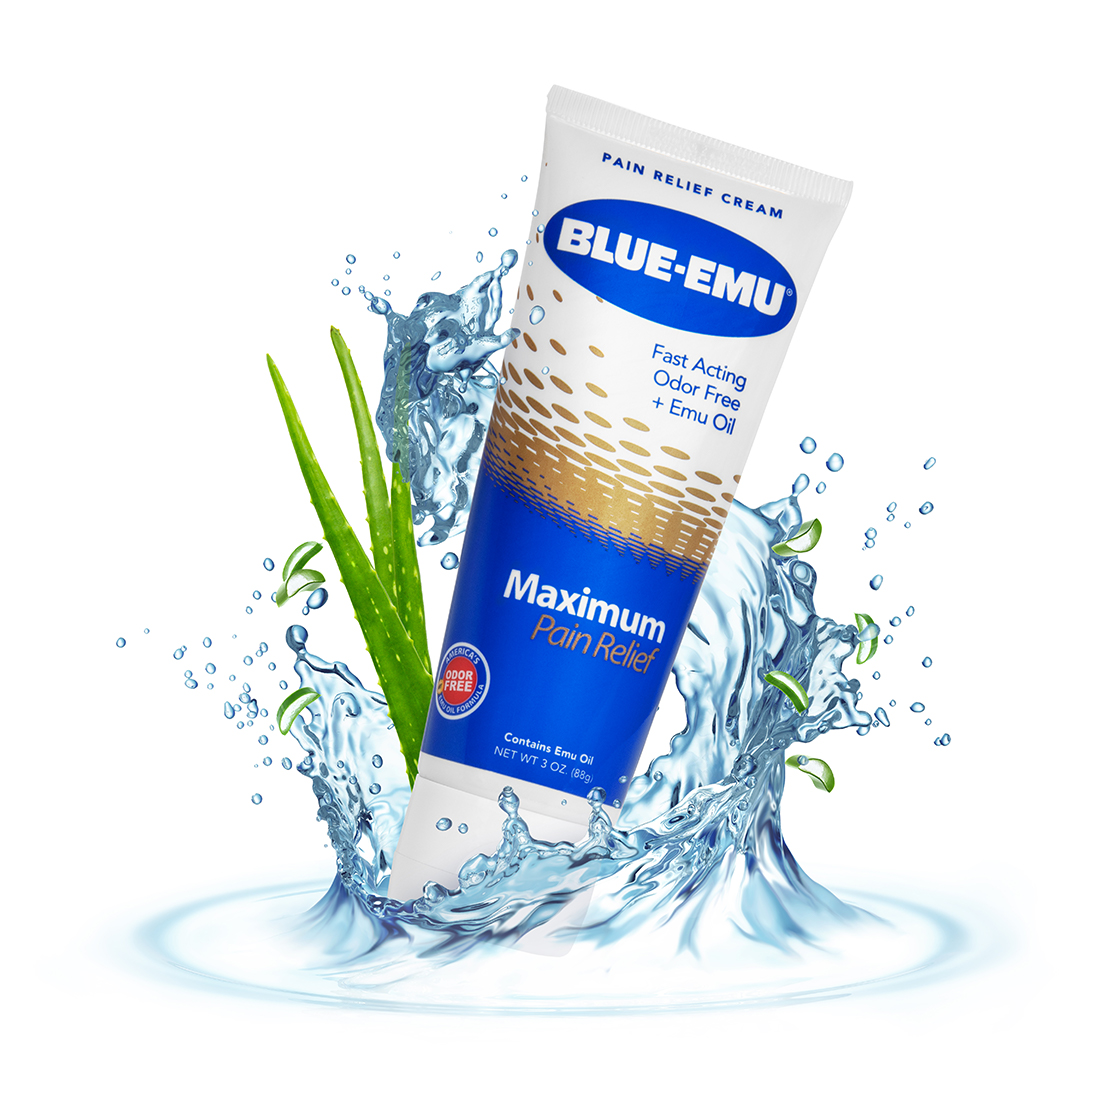 Image of Blue-Emu Maximum Pain Relief Cream tube in a splash of water with two long, green leaves